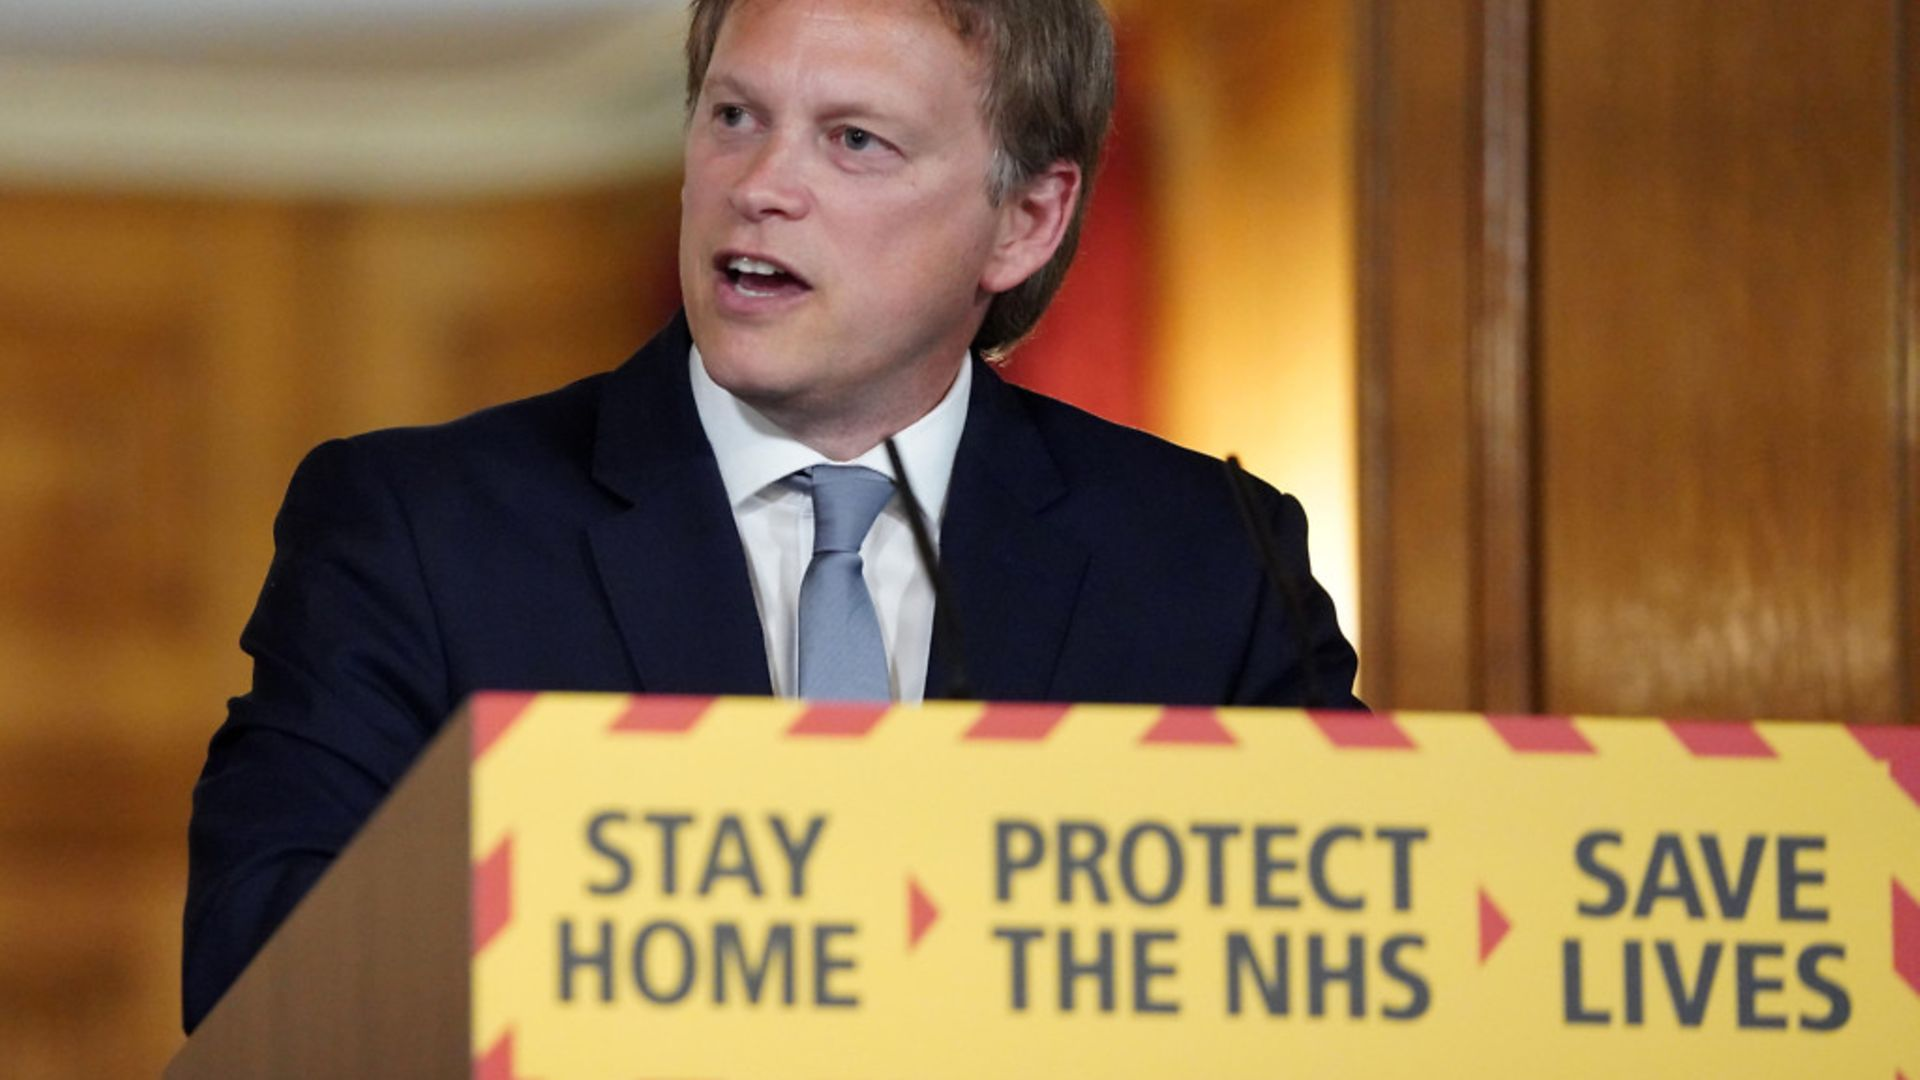 Transport secretary Grant Shapps during a media briefing in Downing Street on coronavirus (COVID-19) - Credit: PA